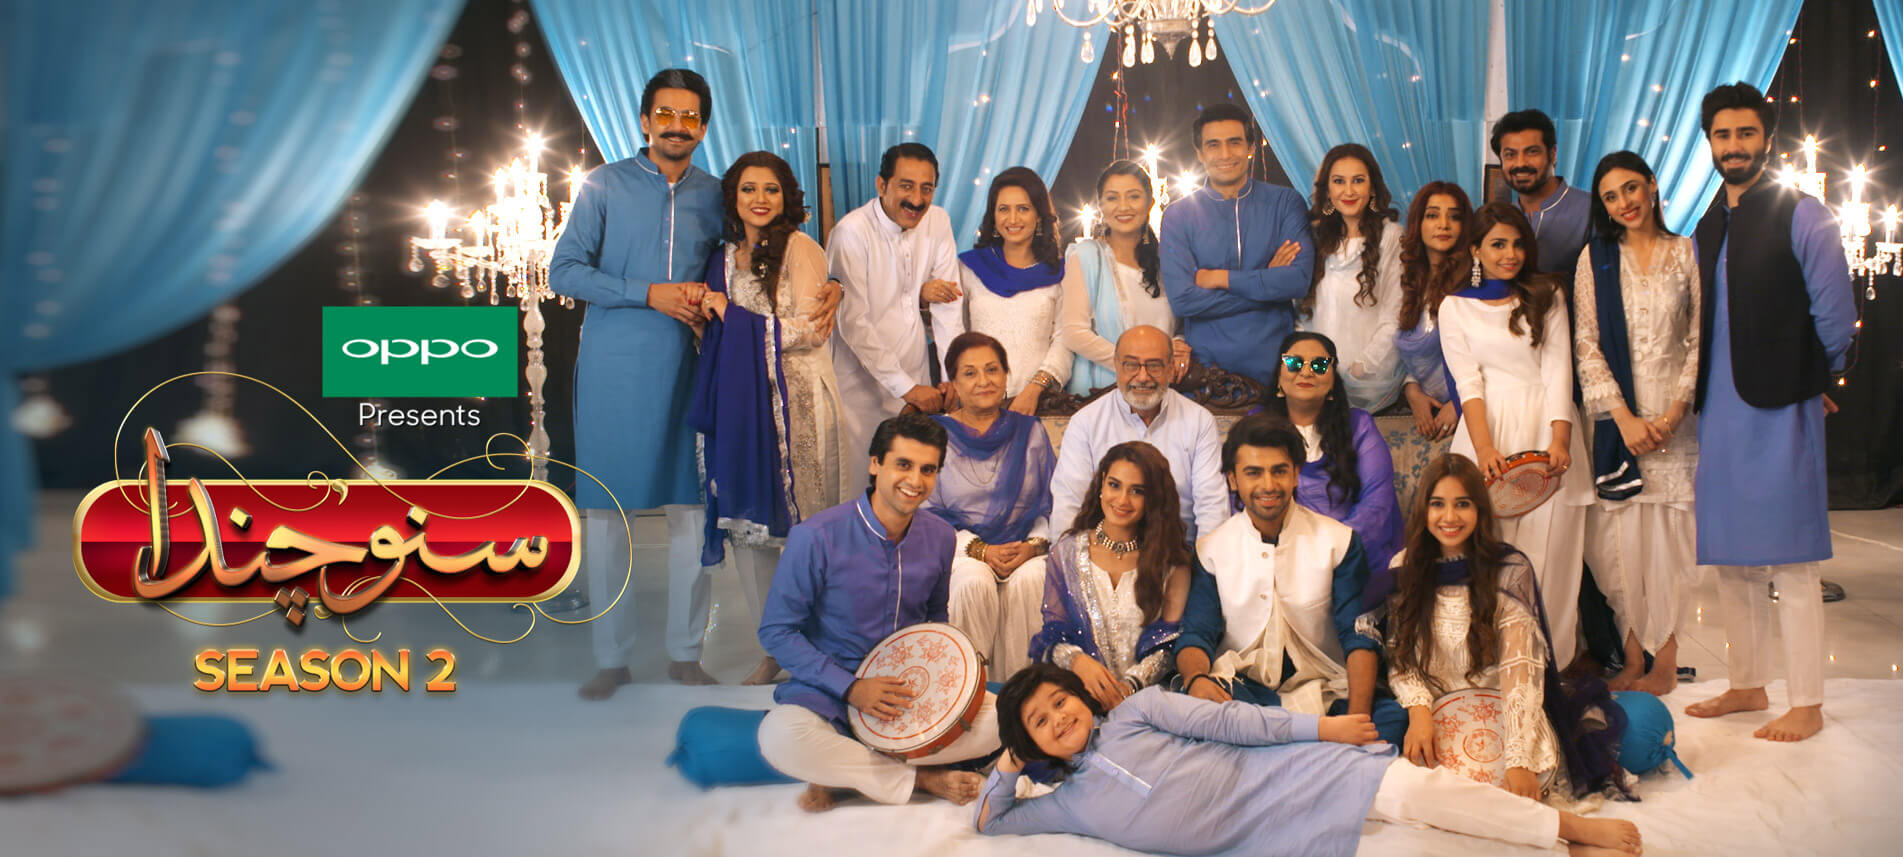 Suno Chanda Season 3: update, Cast, Plot and All You Need To Know